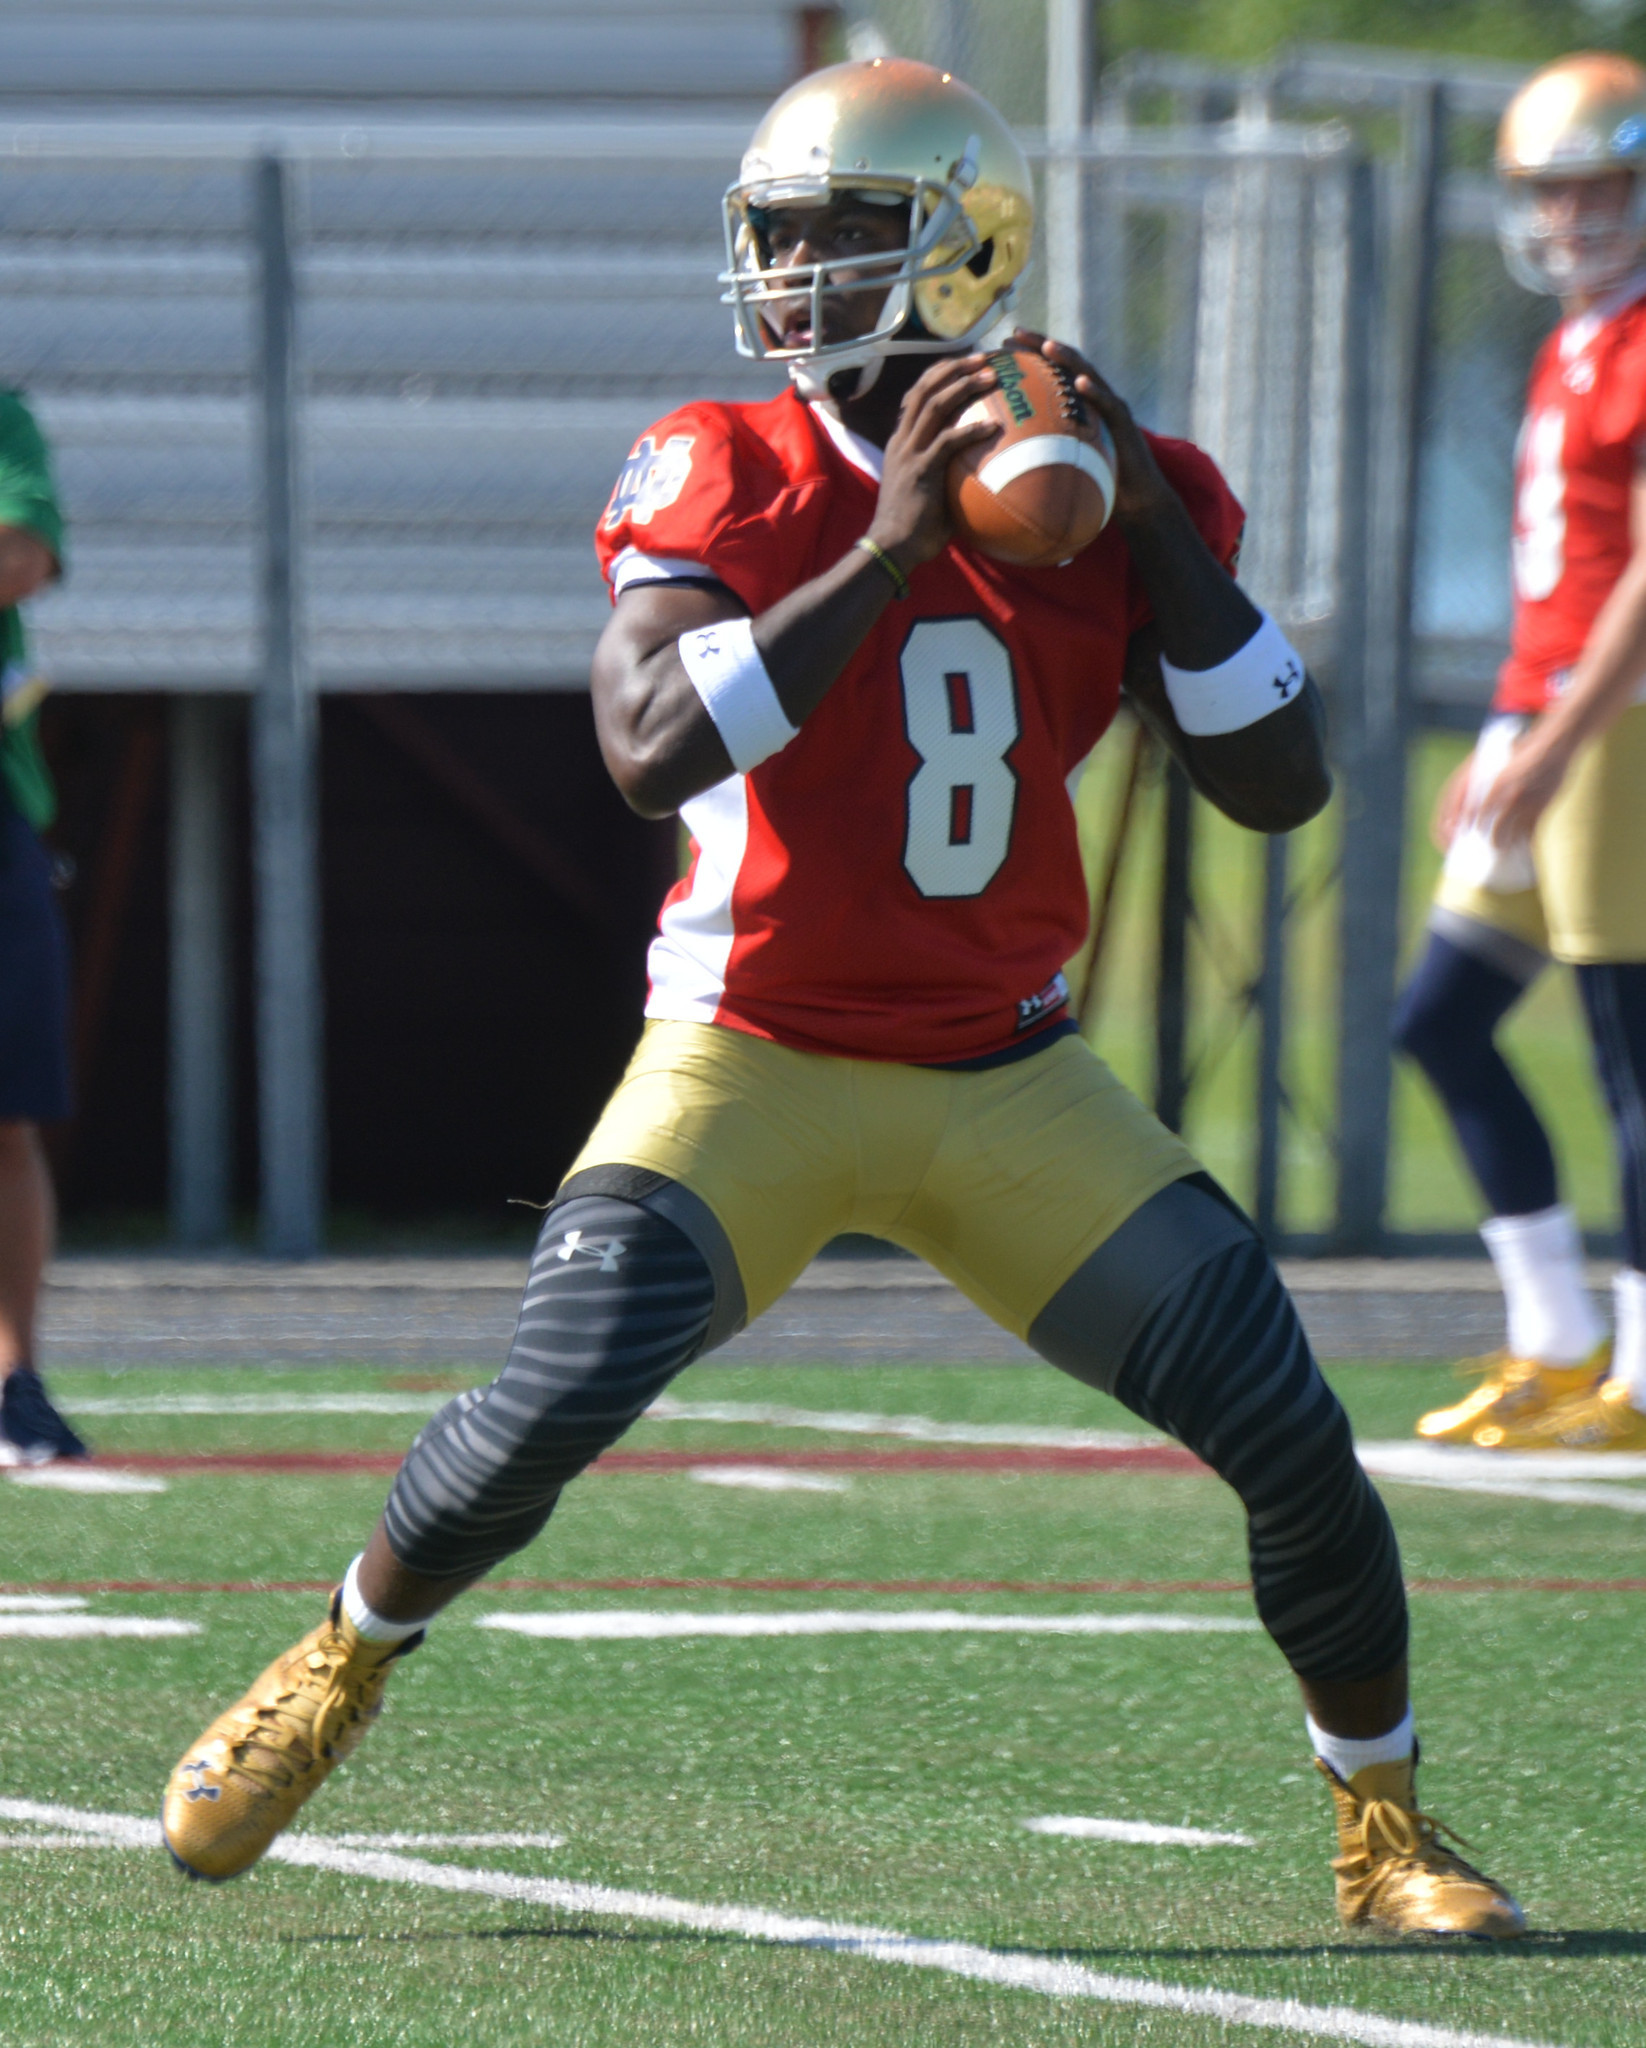 Ct-notre-dame-quarterbacks-blue-gold-spt-0416-20160415